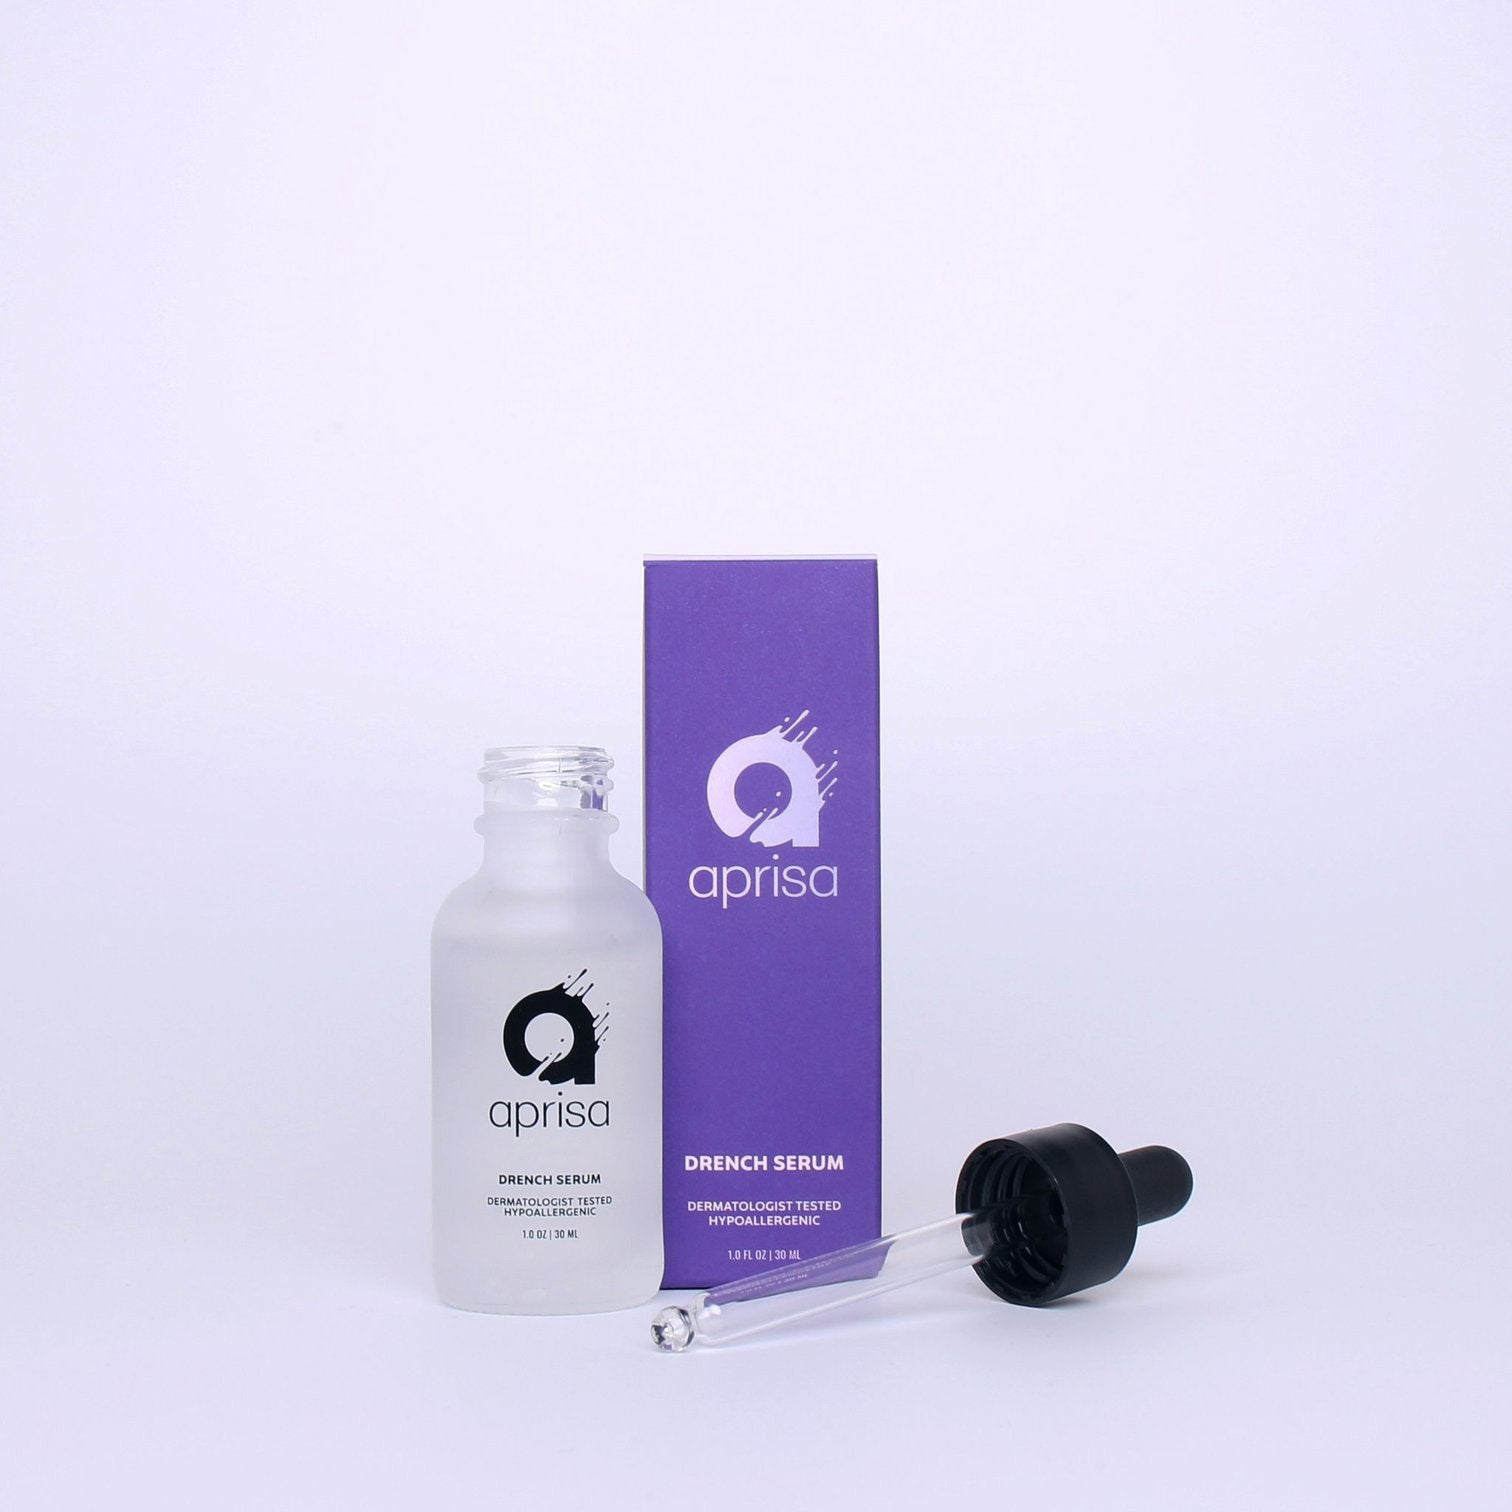 APRISA DRENCH™ Serum